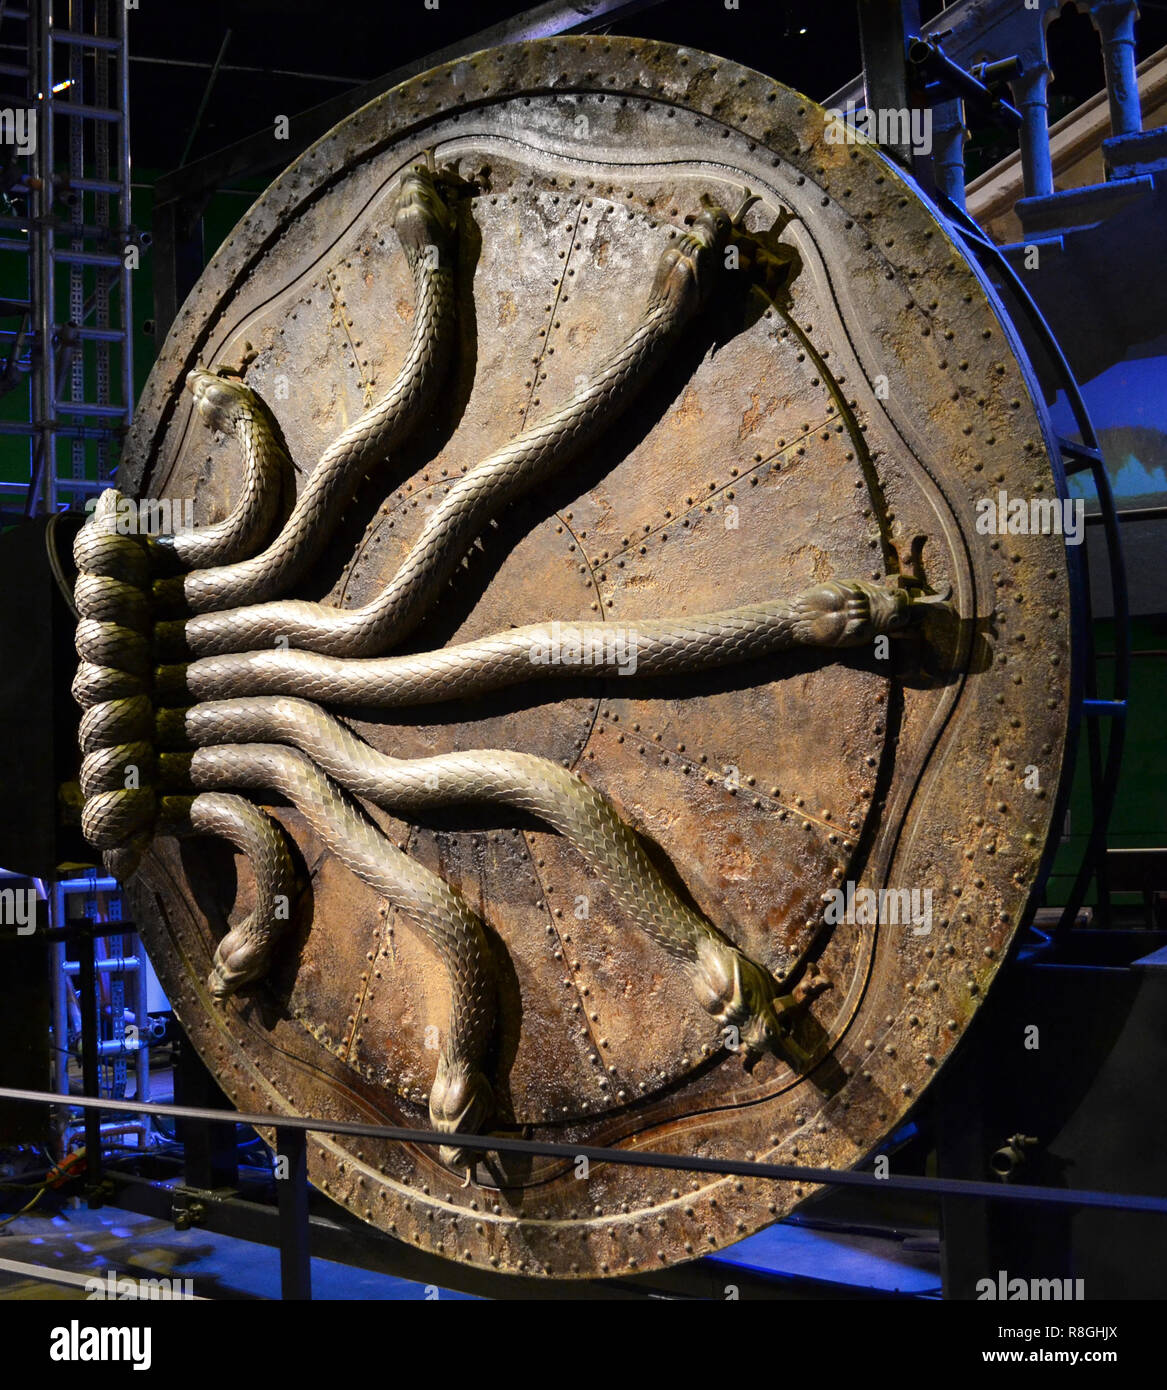 Door to the Chamber of Secrets at the Harry Potter Studios at Leavesden, London, UK - Stock Image